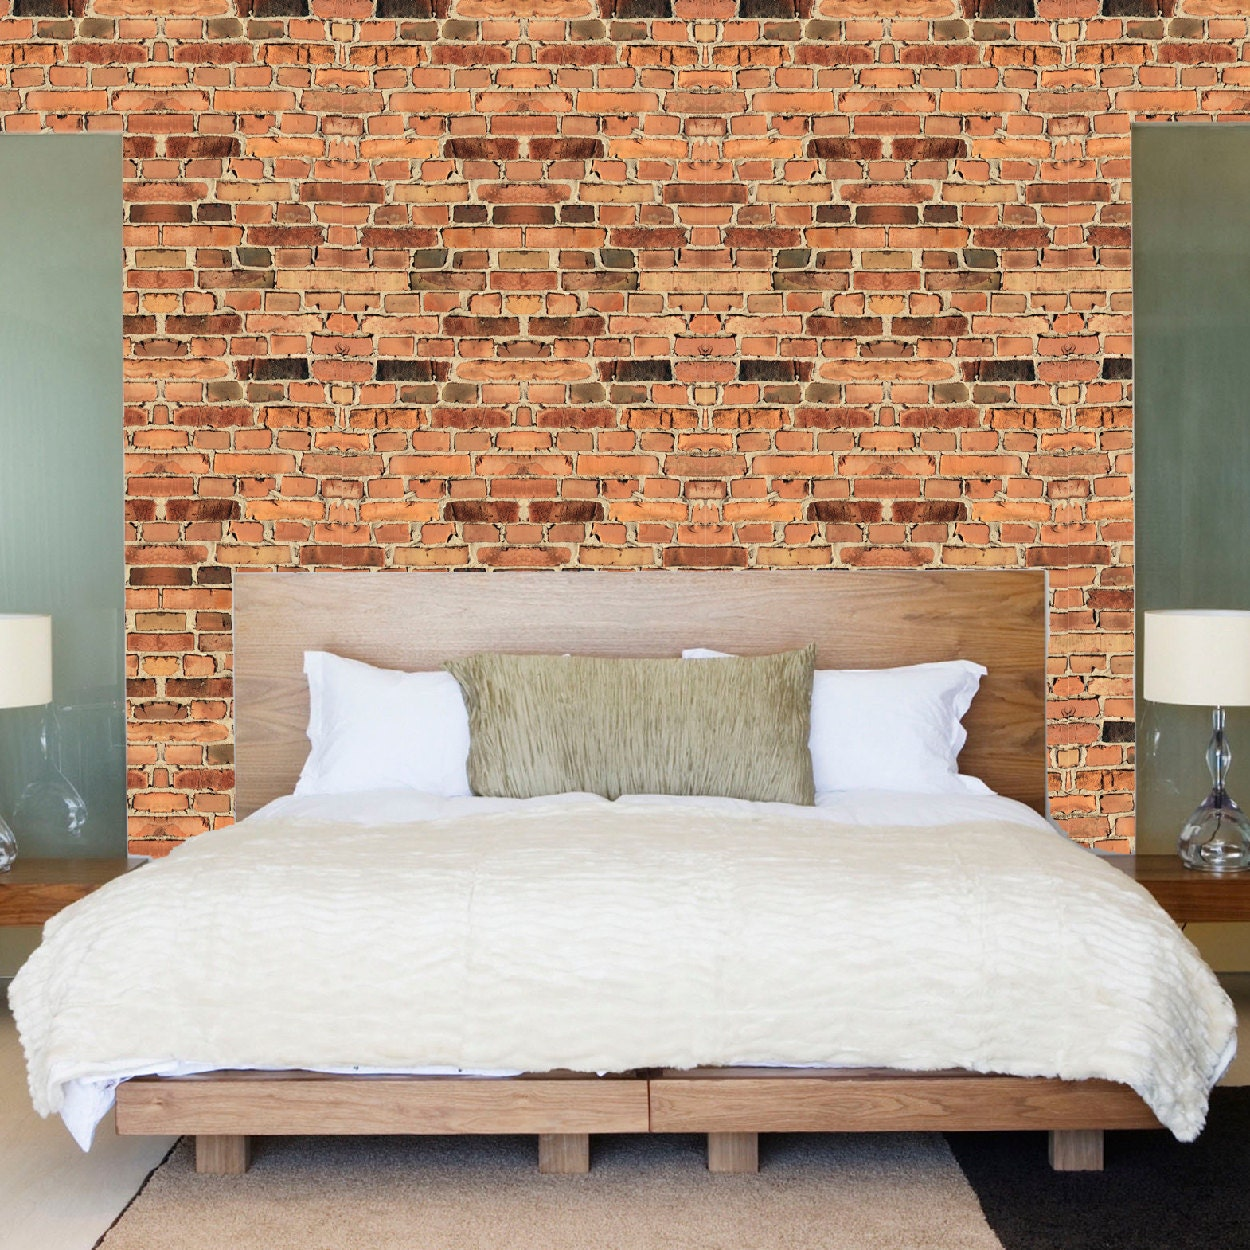 Brick wallpaper self adhesive decals removable brick wall for Brick wall decal mural